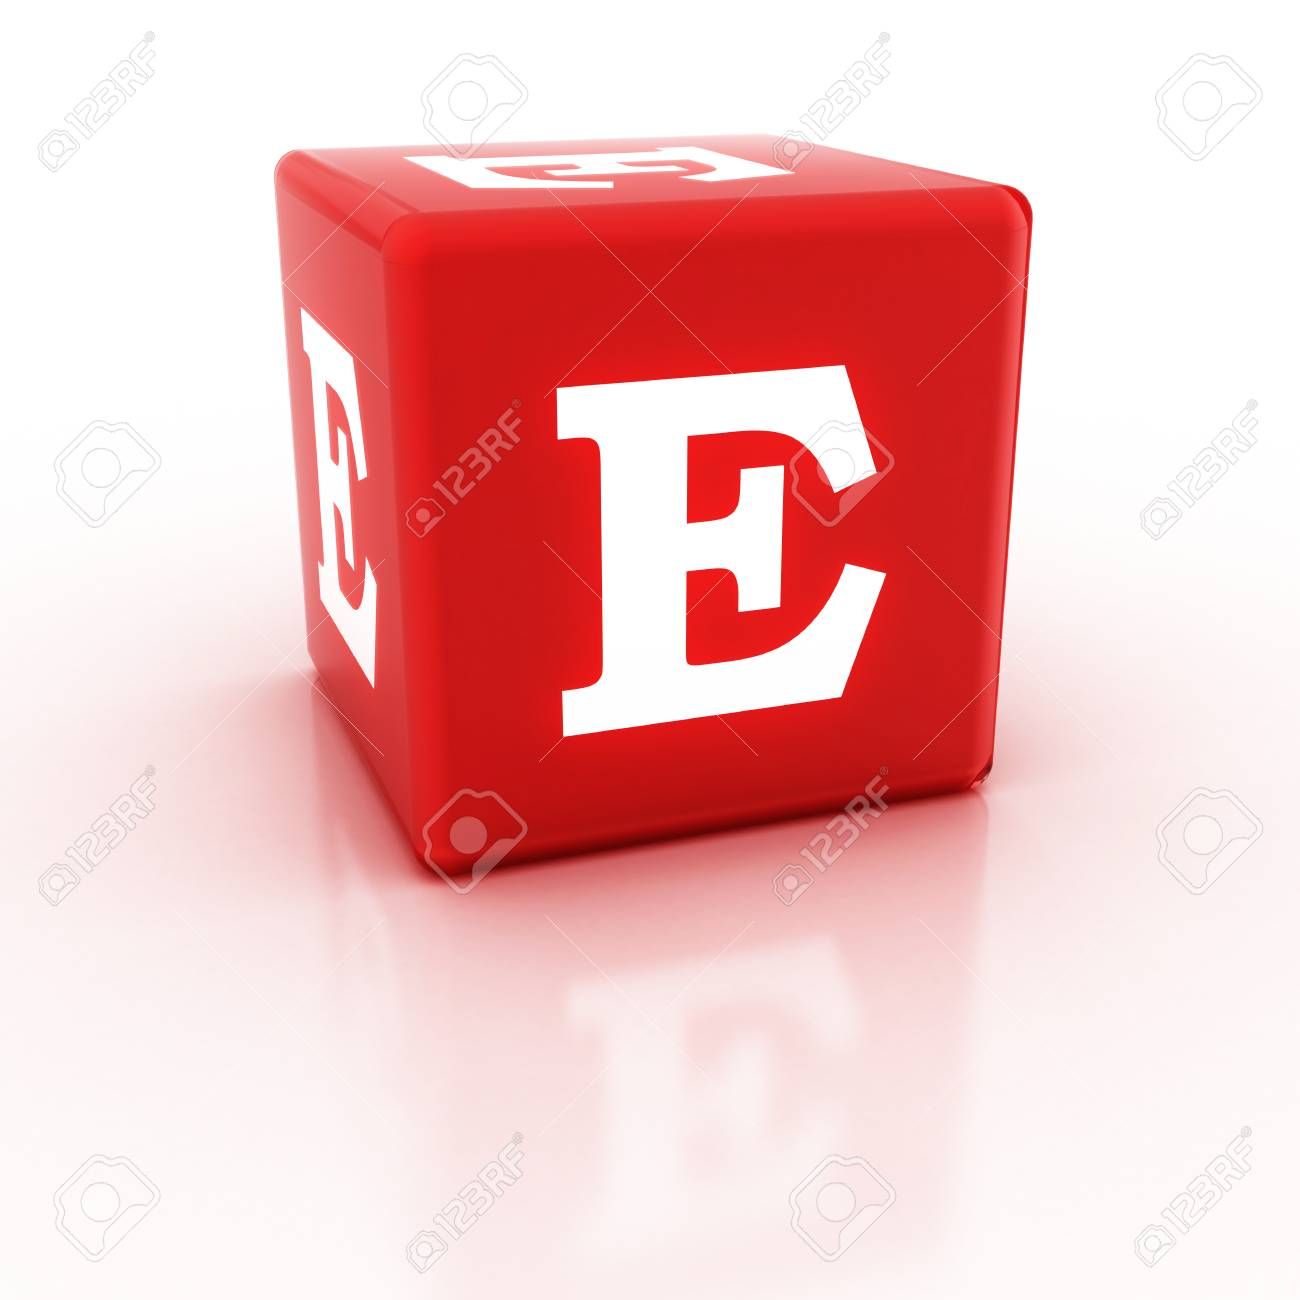 The Letter E On The Cube D Render Of A Cube The Alphabet Blocks